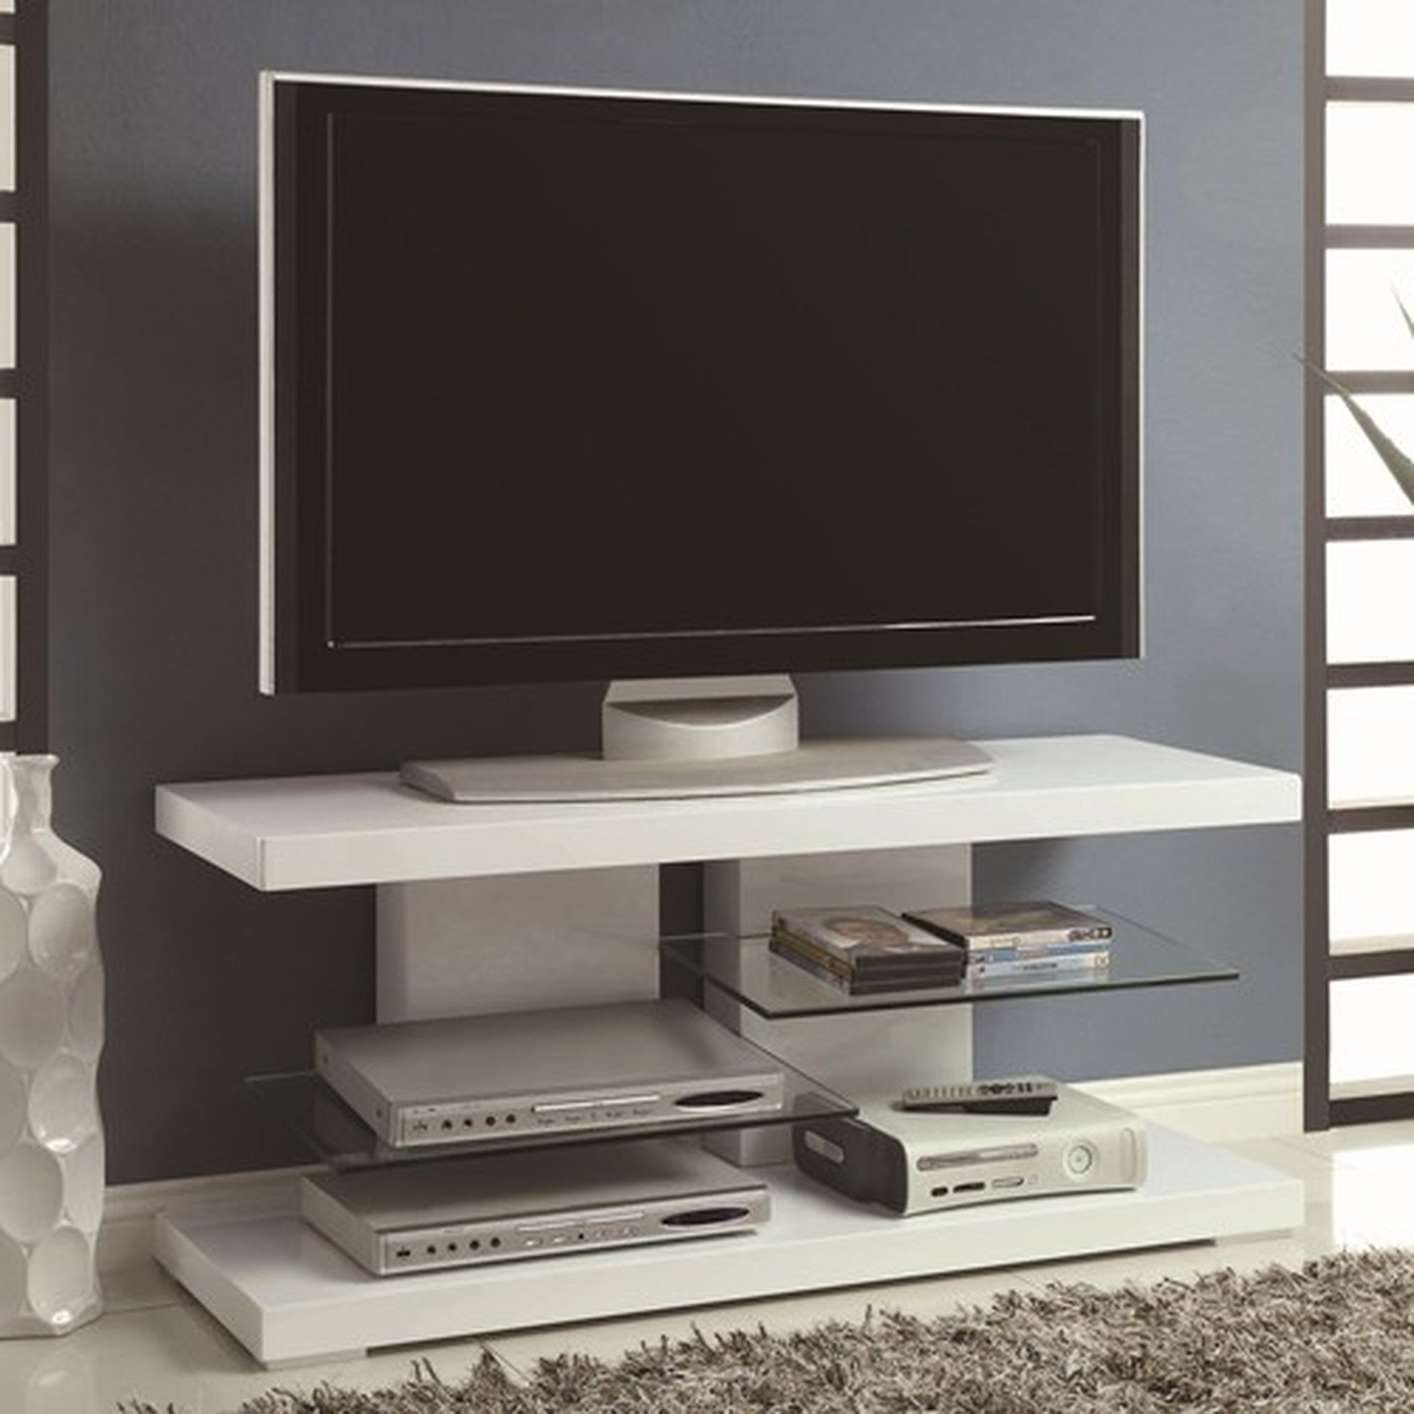 White Glass Tv Stand – Steal A Sofa Furniture Outlet Los Angeles Ca Intended For Glass Tv Stands (View 14 of 15)